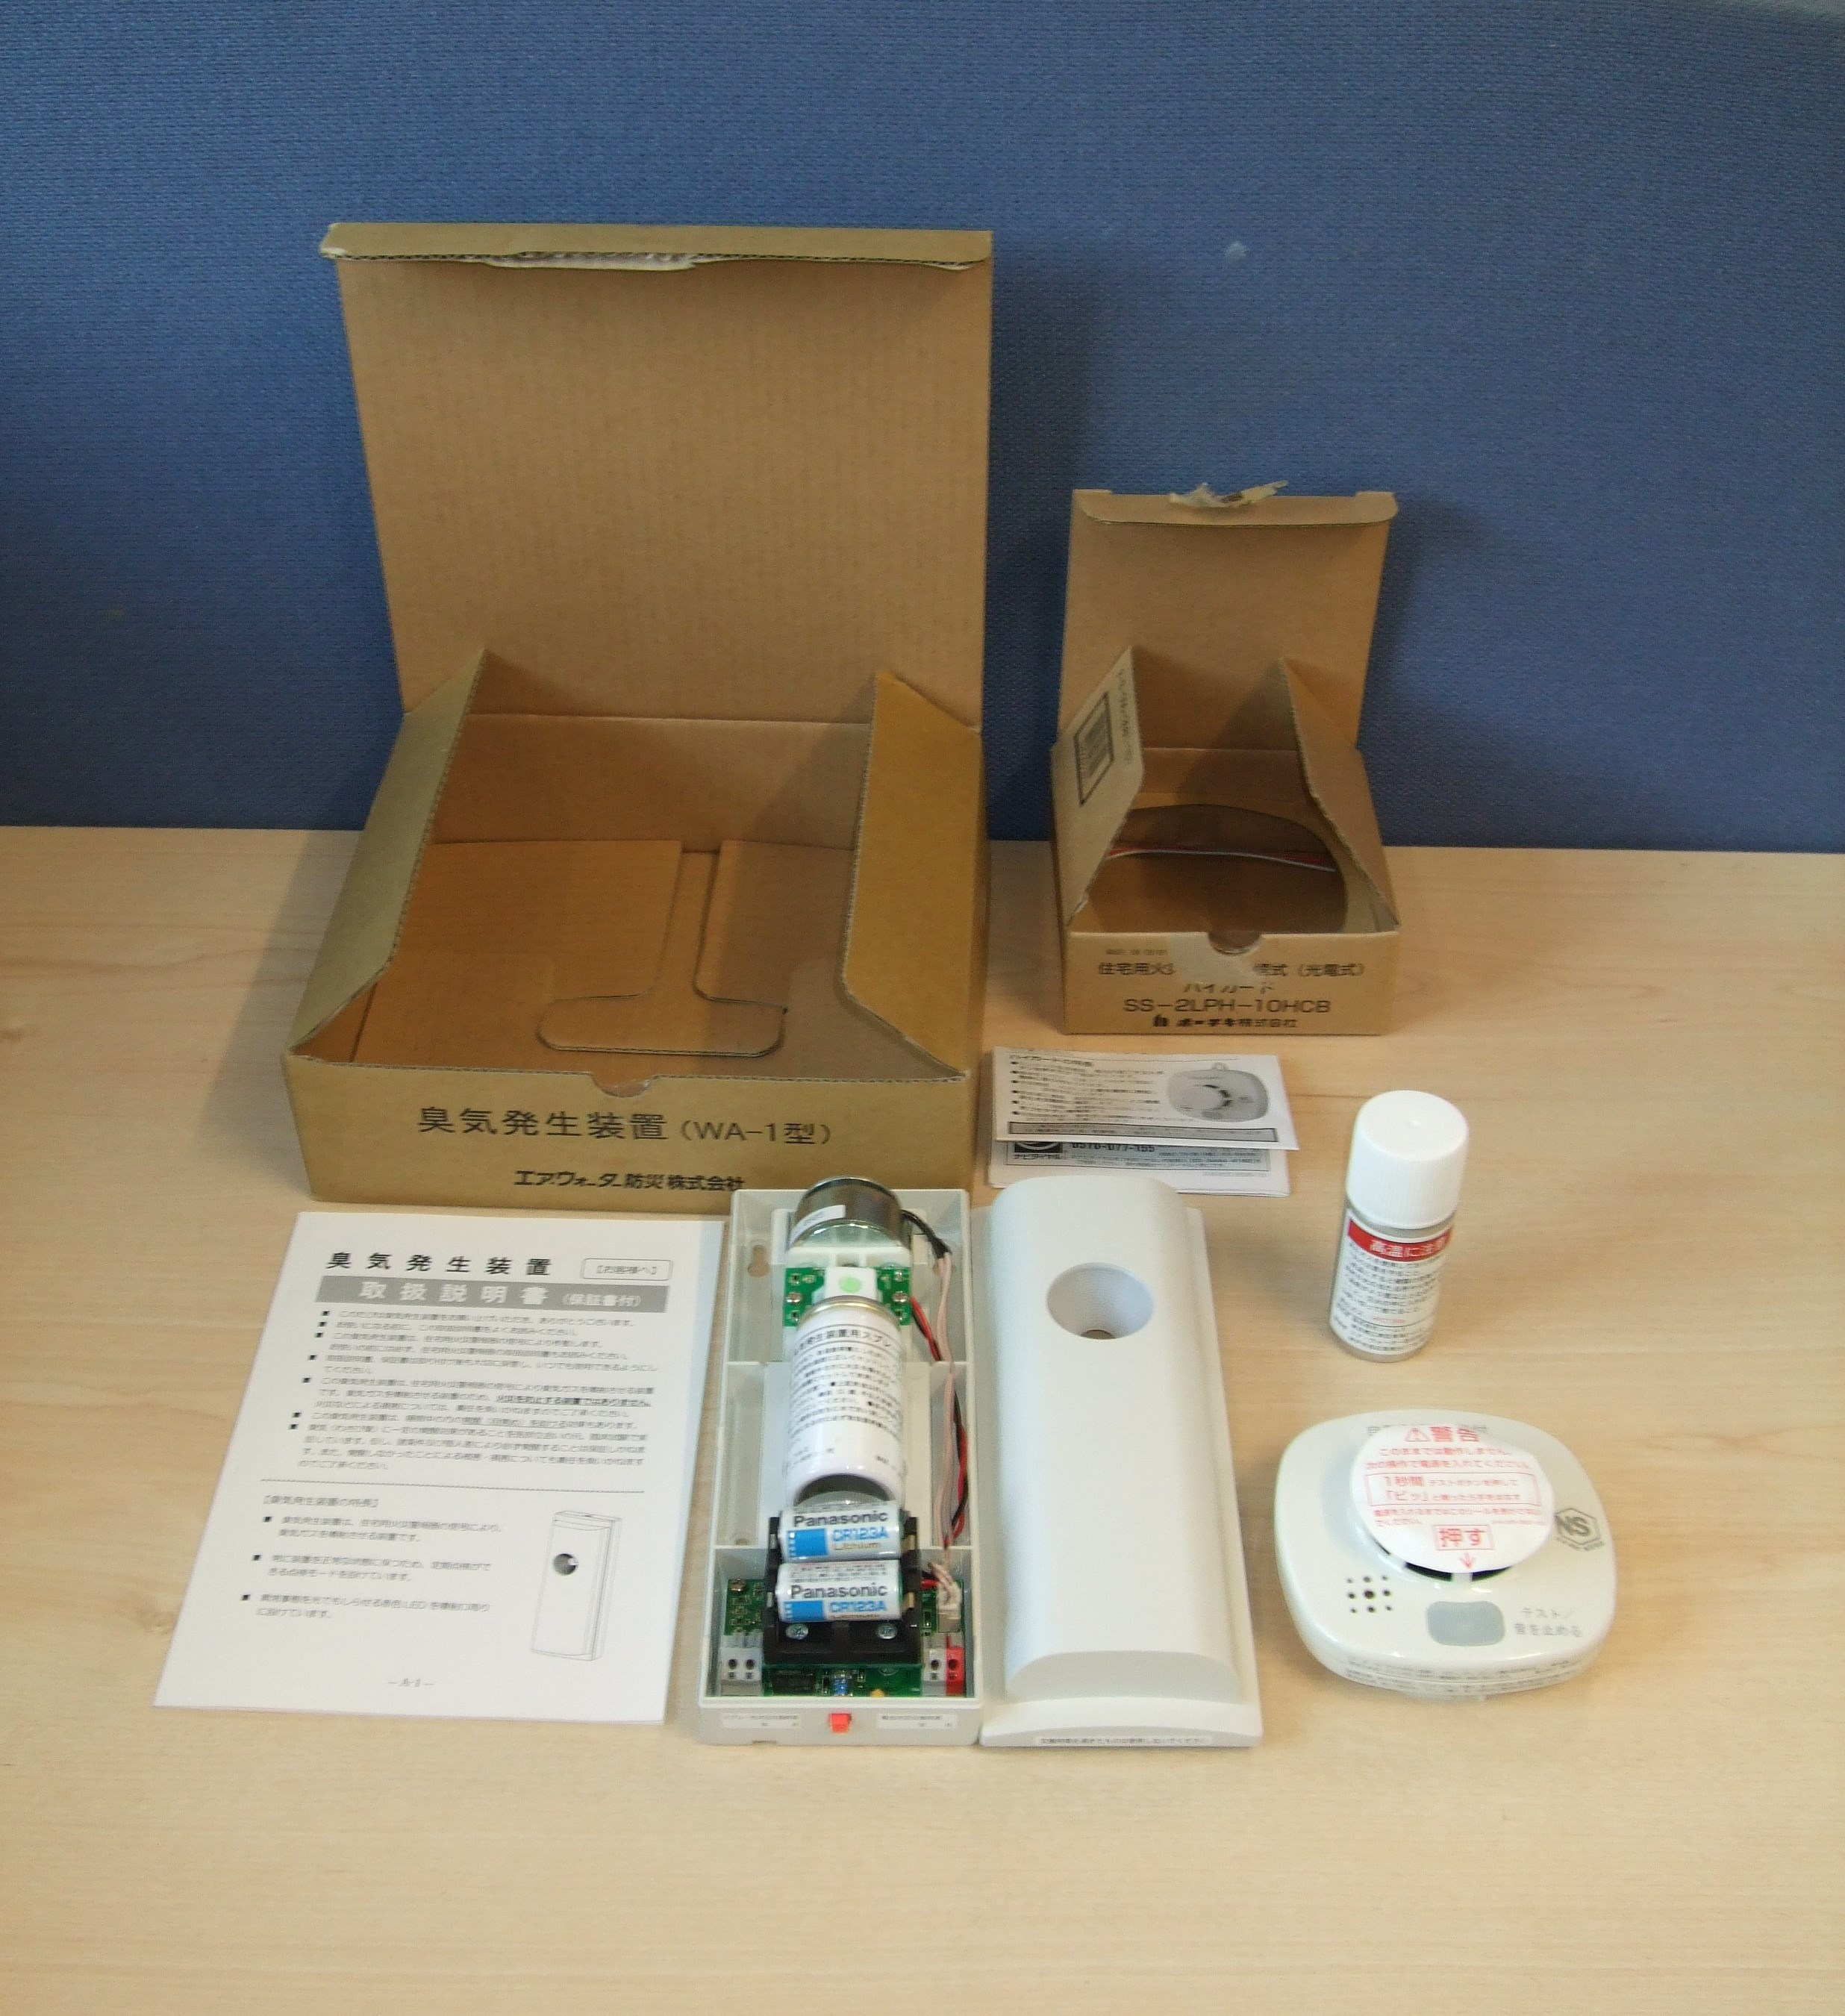 Wasabi Fire Alarm and boxes